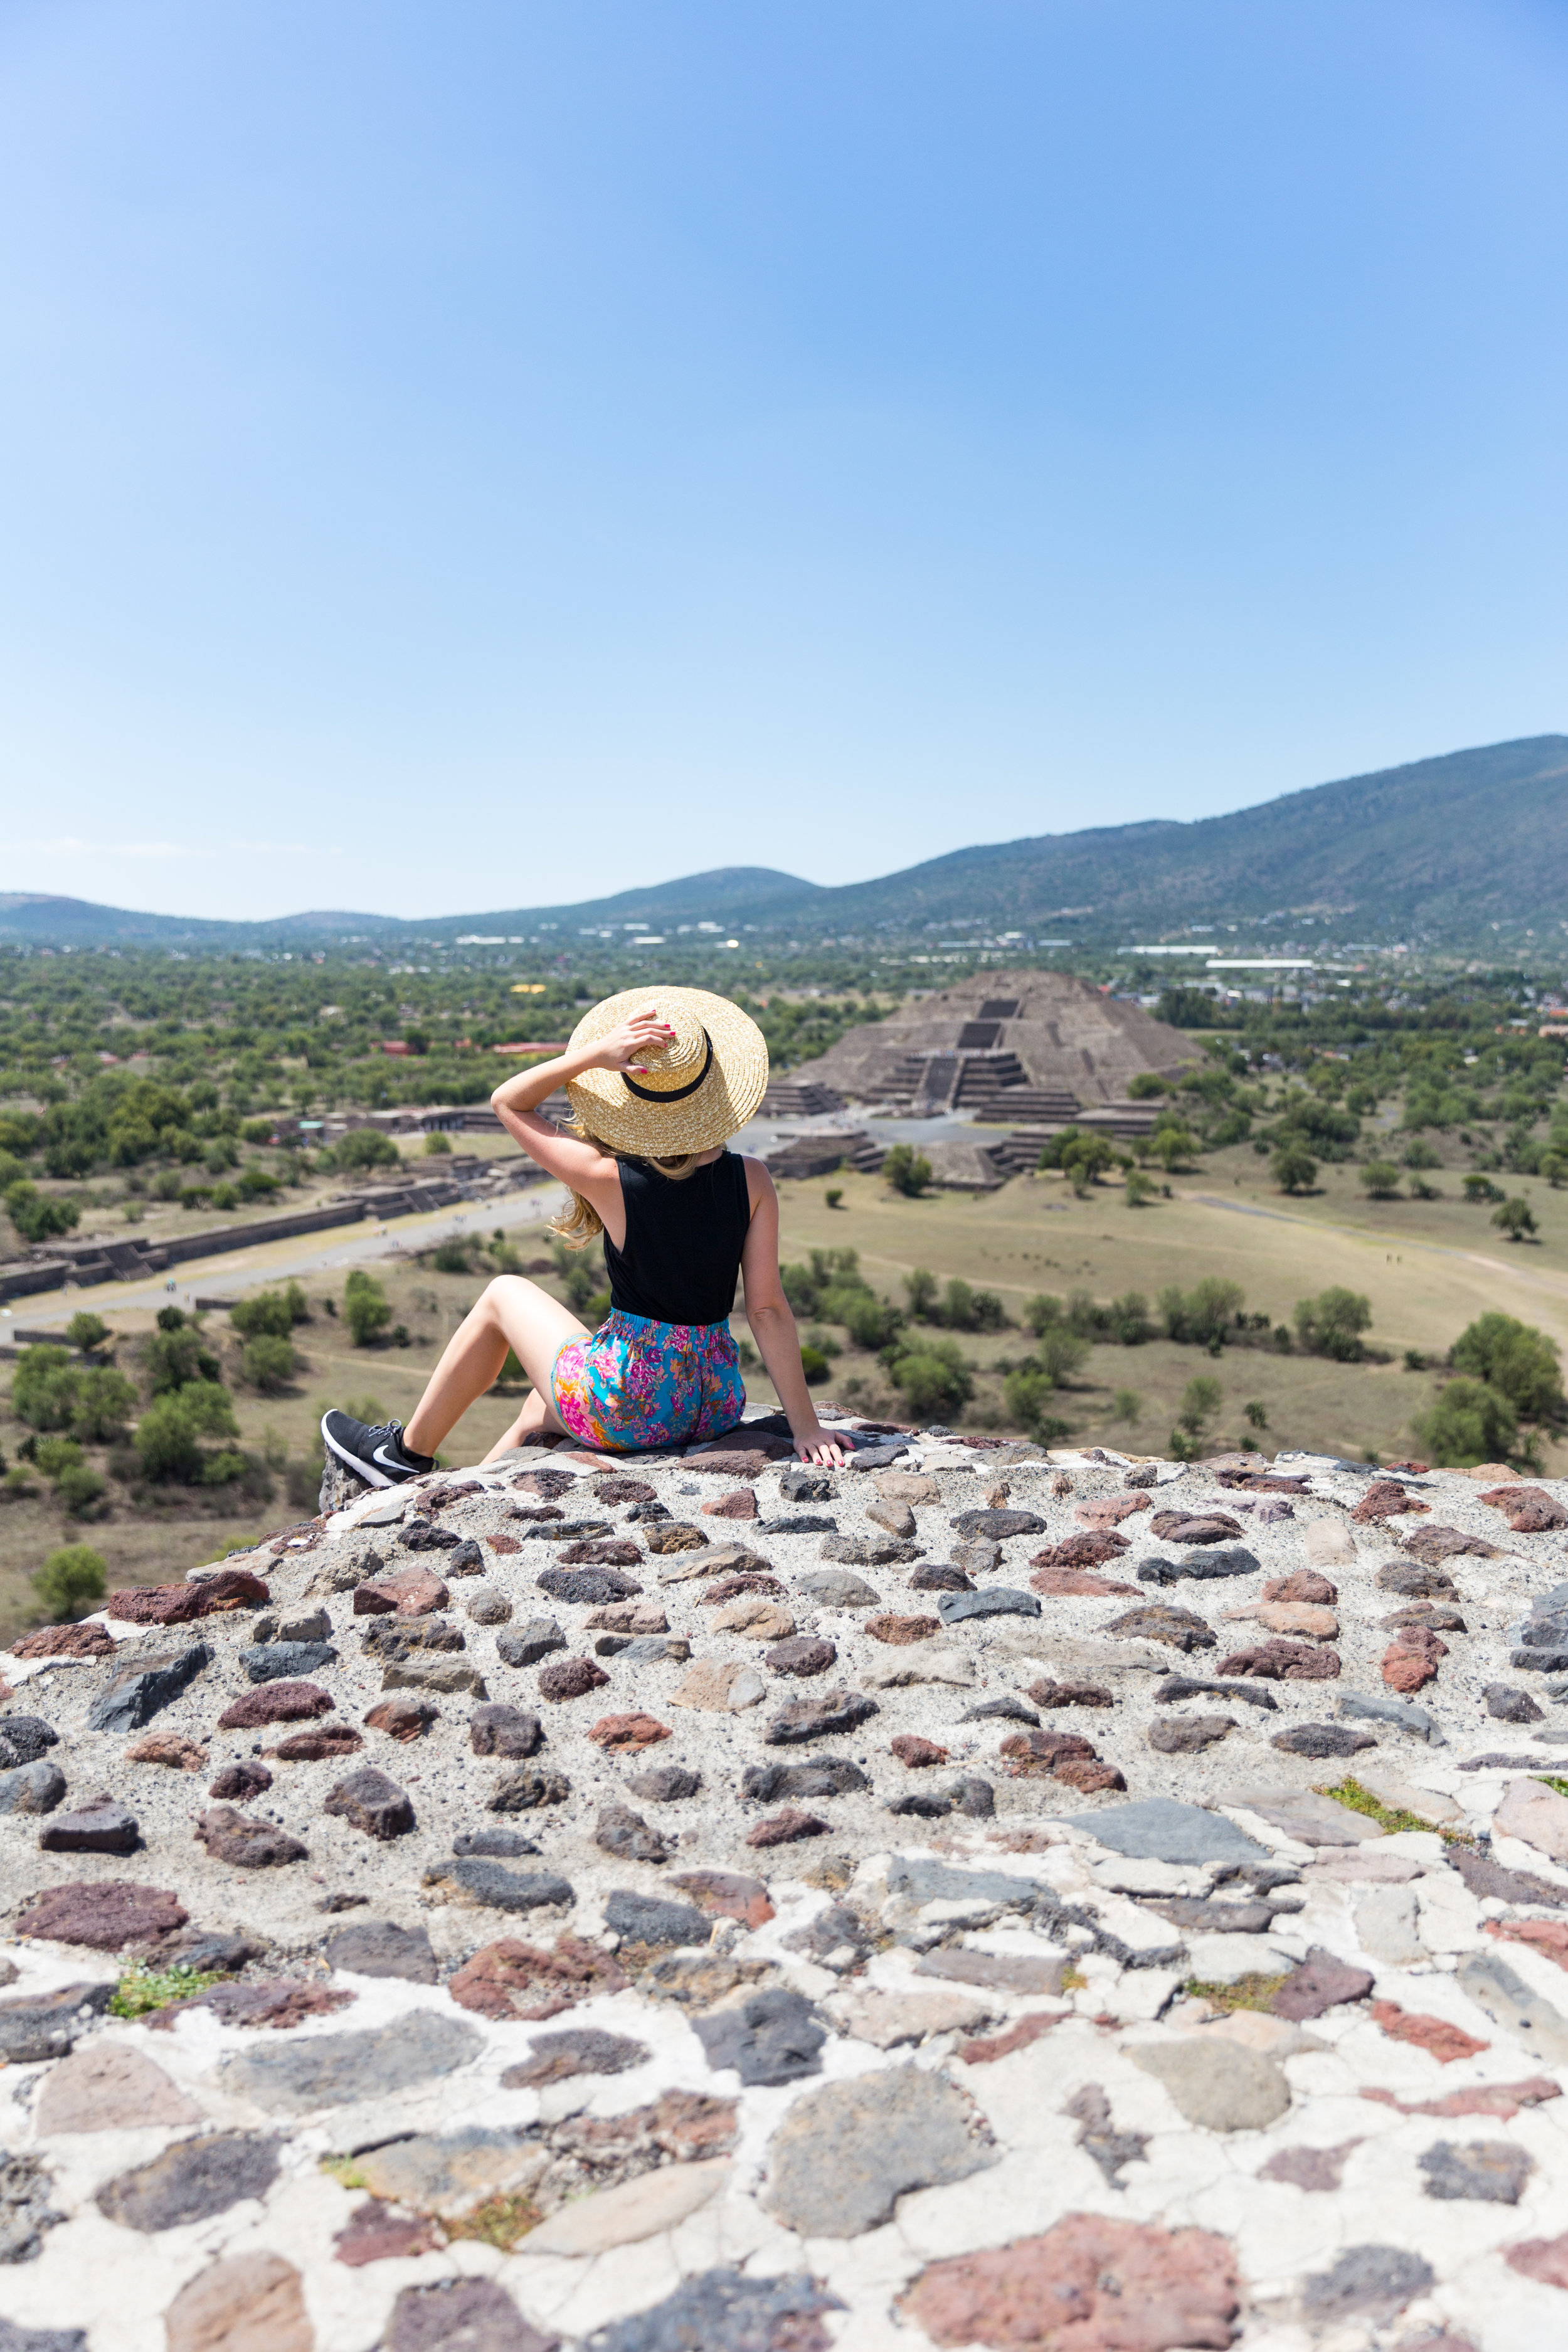 Mexico City Teotihuacan Pyramids Pattern Shorts Casual Summer Outfit-10.jpg